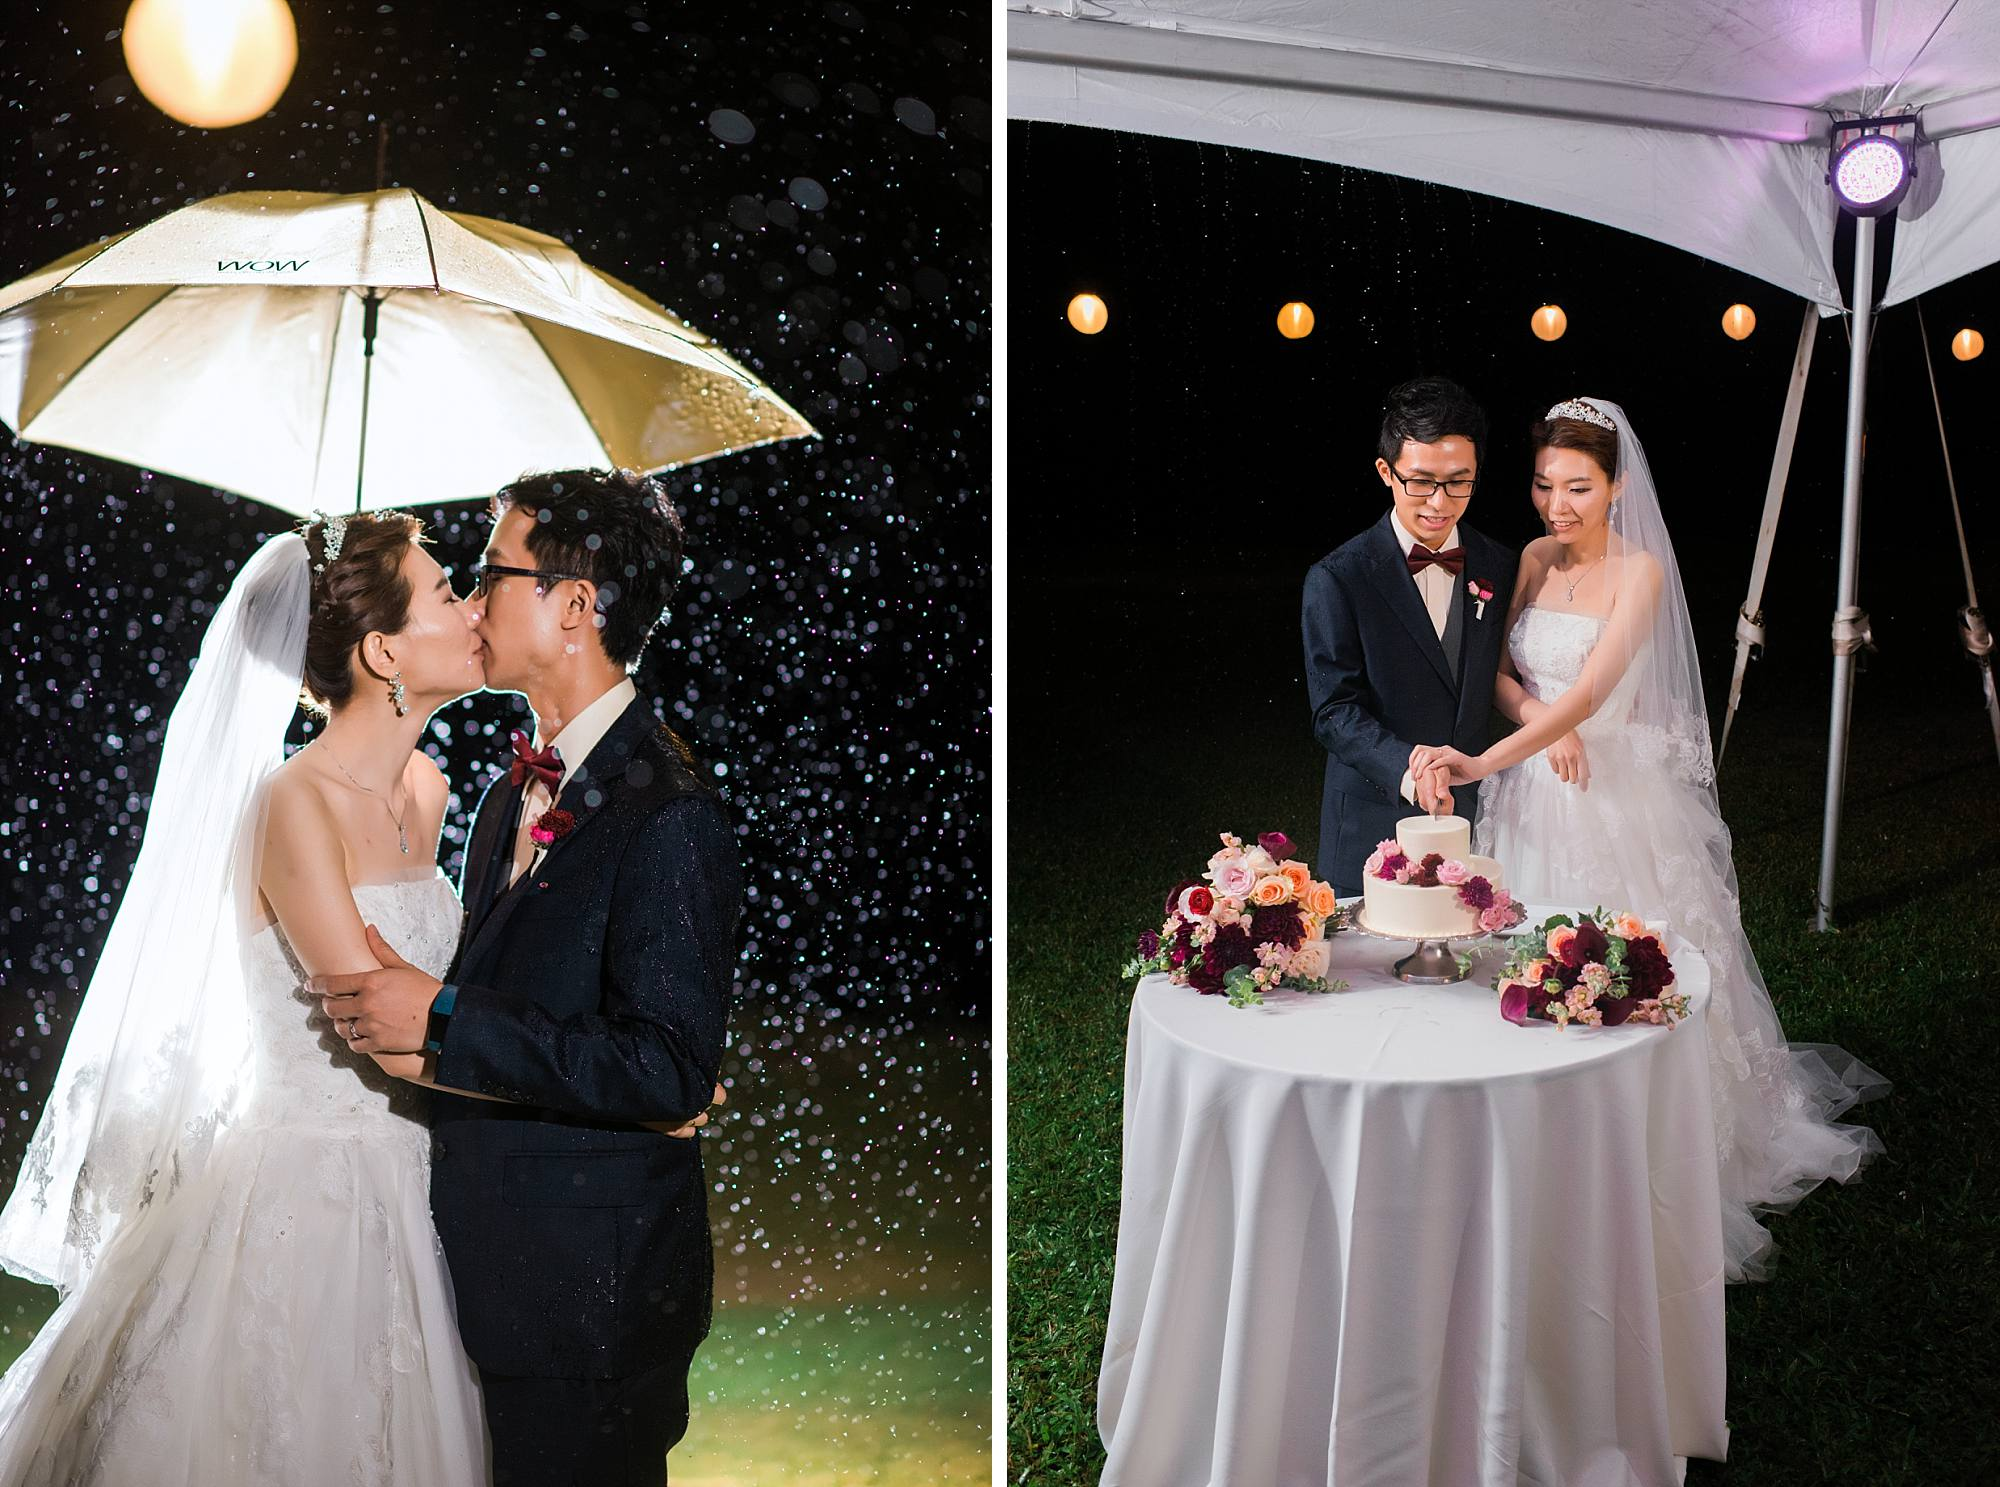 Lok And Jina Congratulations On Your Beautiful Rainy White Orchid Beach House Wedding Thank You For Trusting Me To Get The Shots Even When